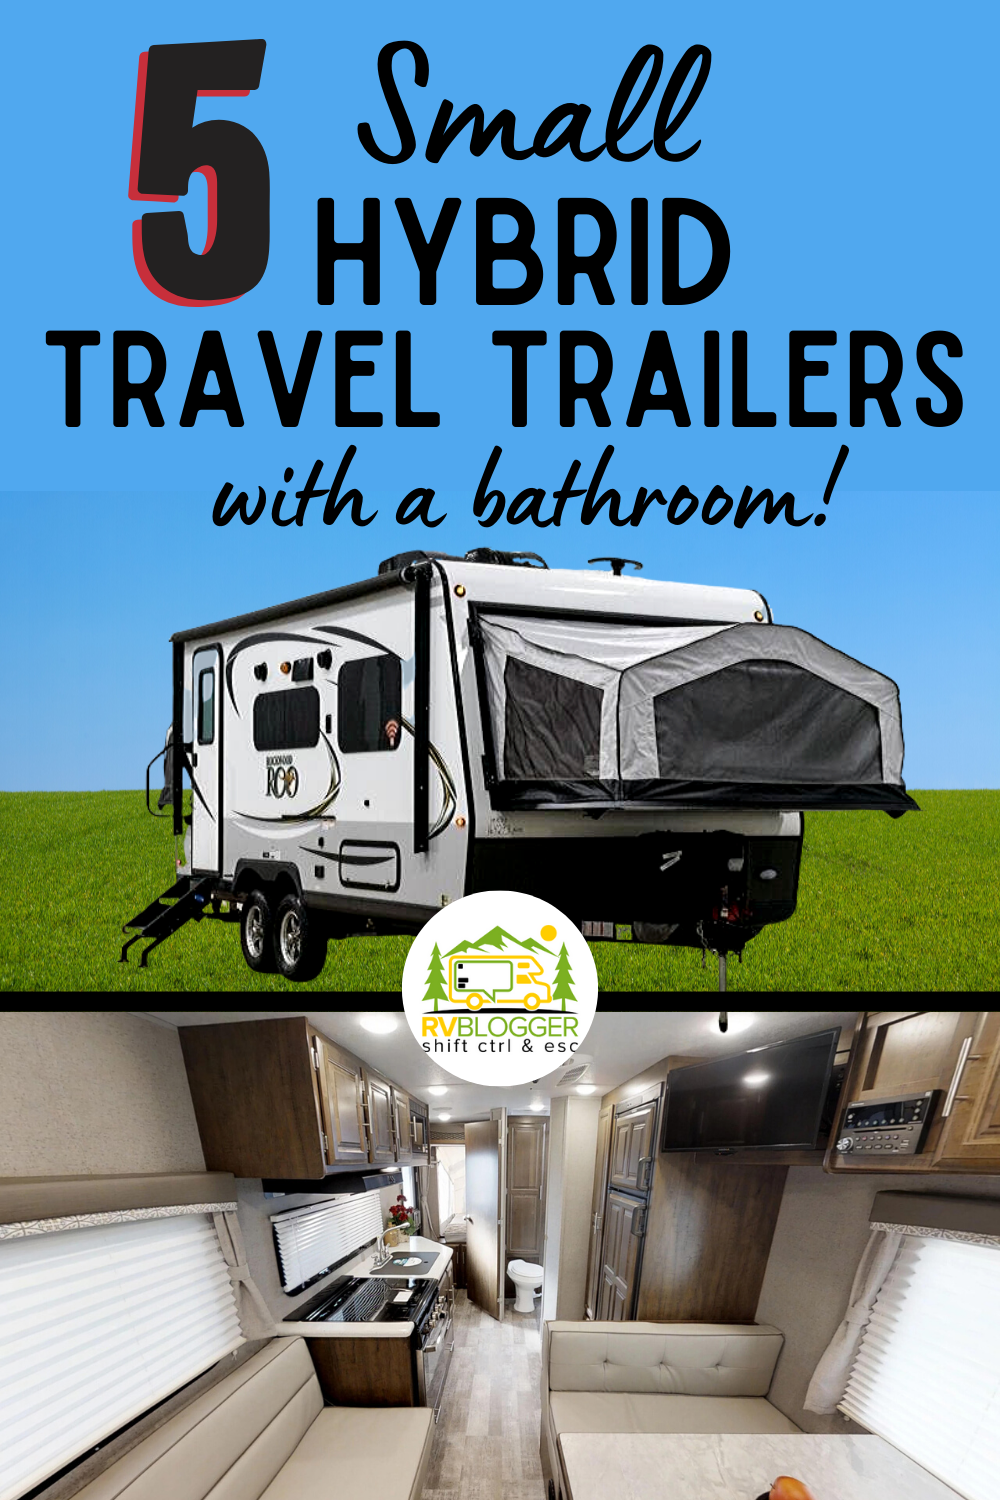 We Tour And Review 5 Small Hybrid Travel Trailers With A Bathroom